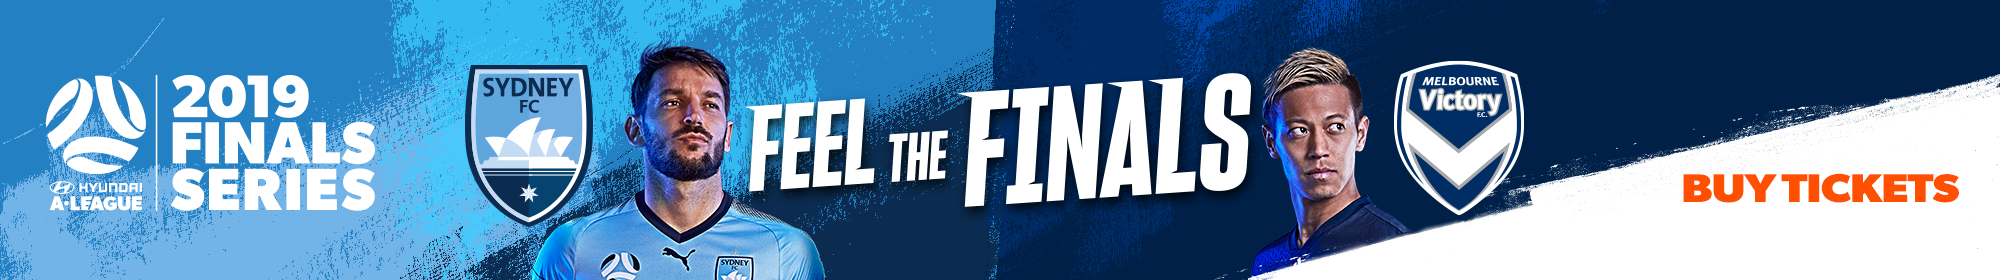 Feel The Finals - Sydney FC v Melbourne Victory Semi Final Thin Banner